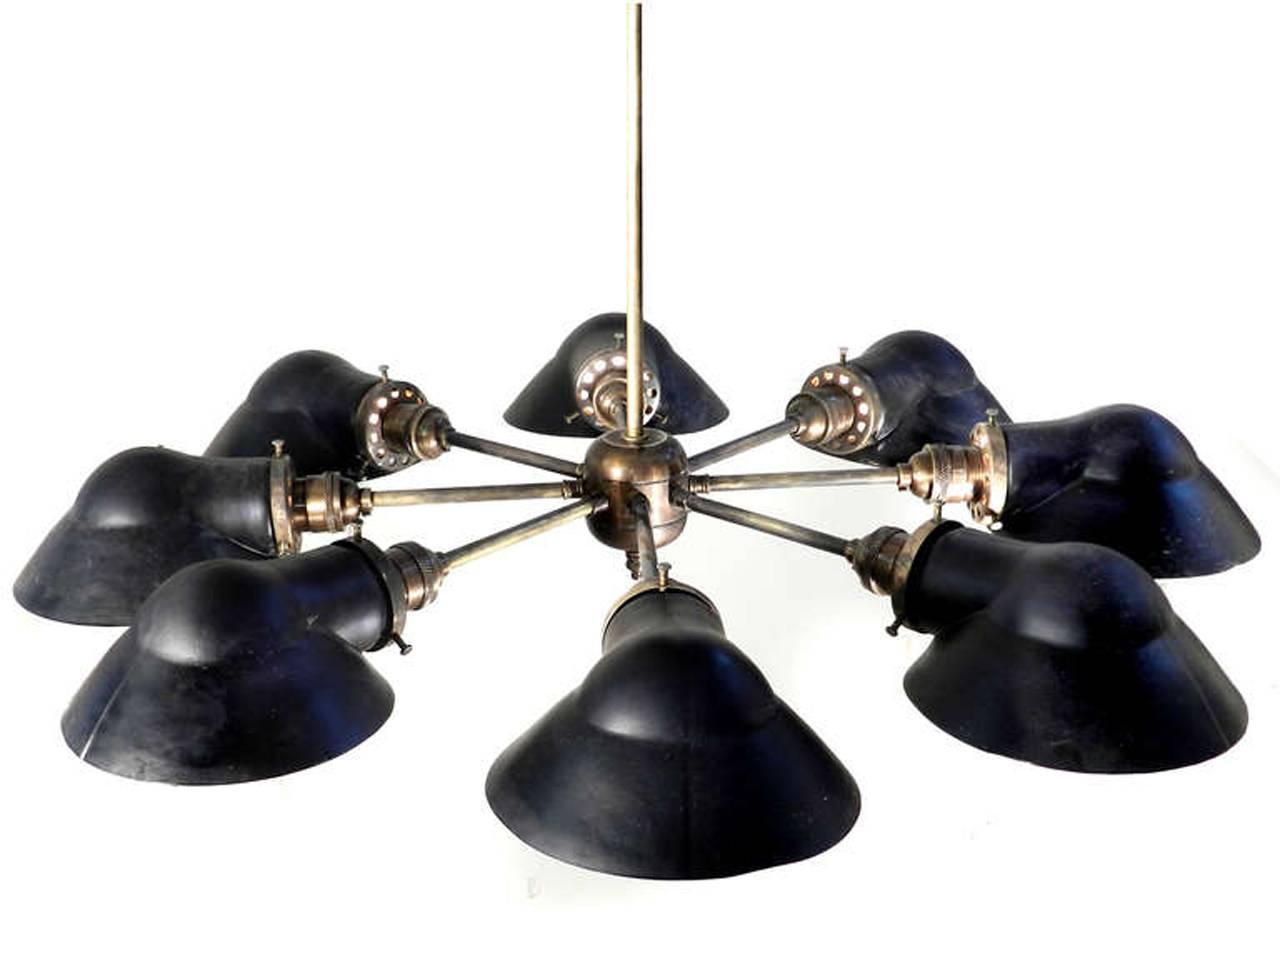 1890s Style Operating Room Light For Sale At 1stdibs